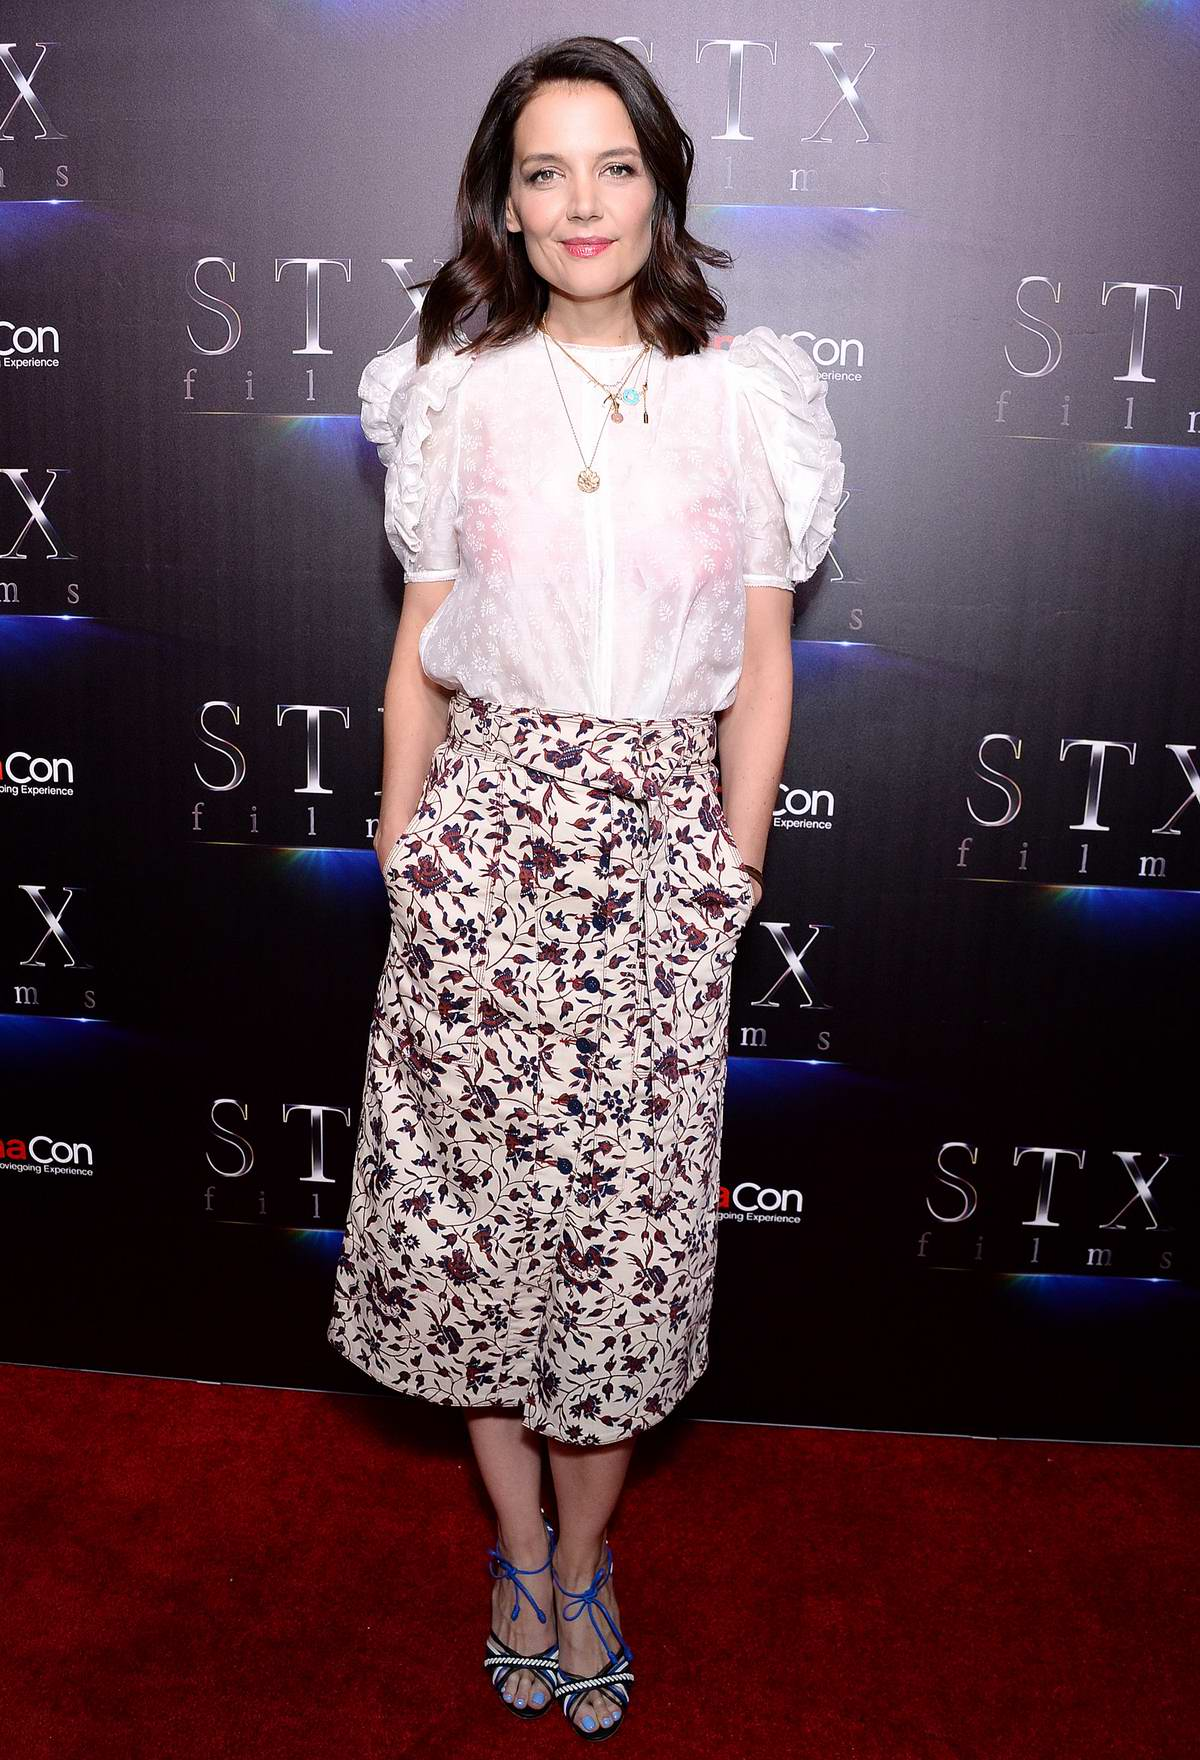 Katie Holmes attends The State of the Industry: Past, Present and Future STX films at CinemaCon in Las Vegas, Nevada